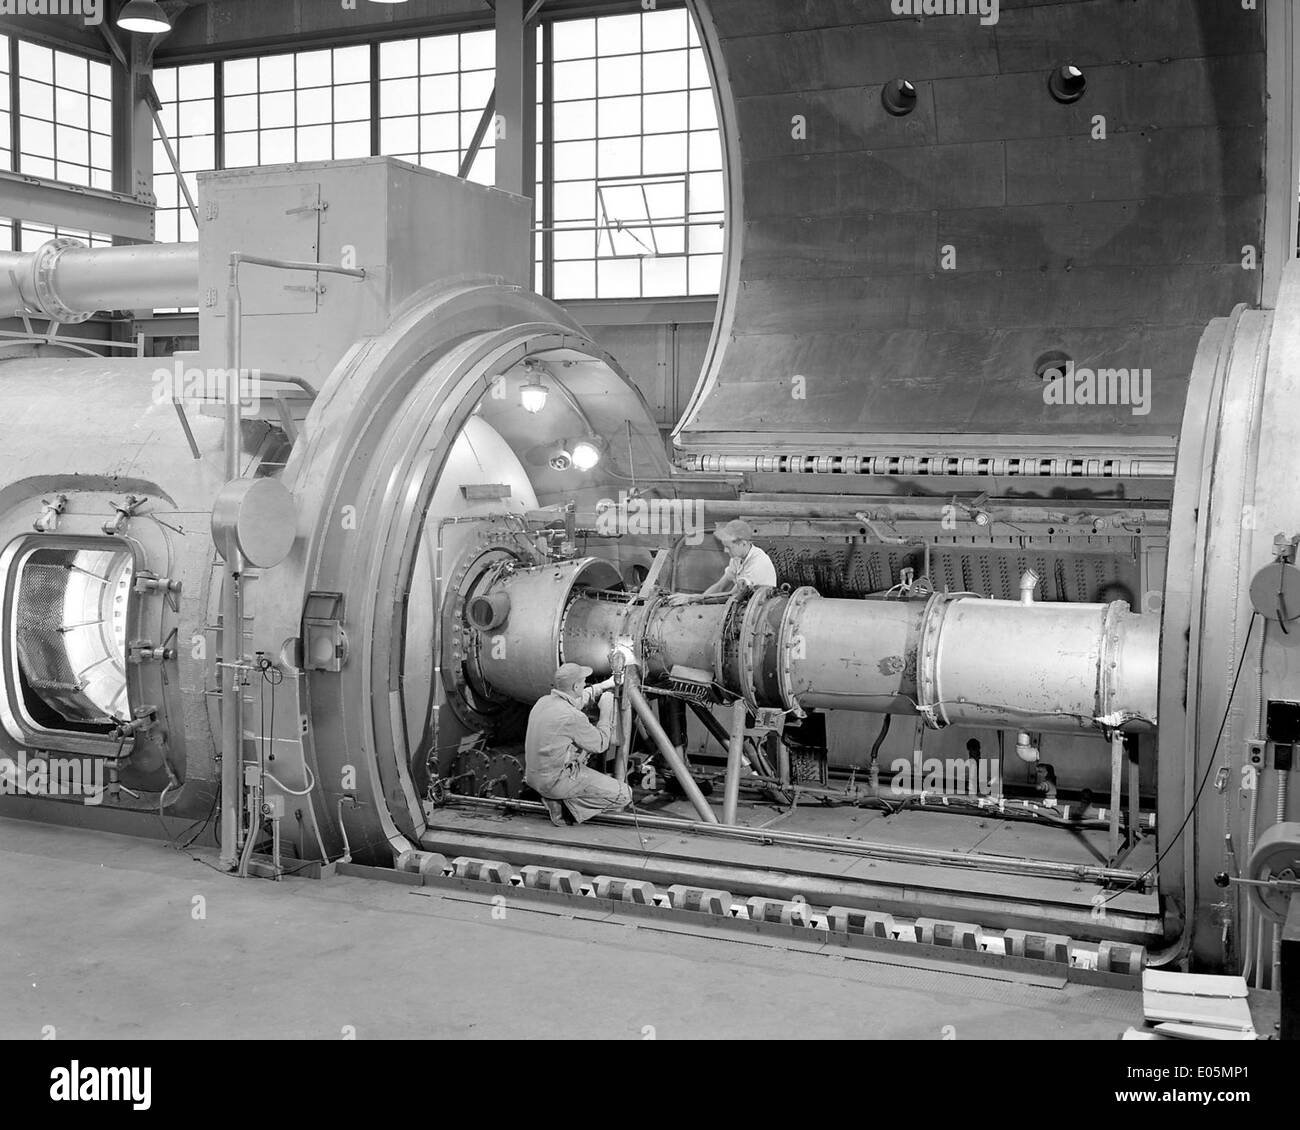 28 Romarc Ram Jet Engine in PSL Tank - Stock Image